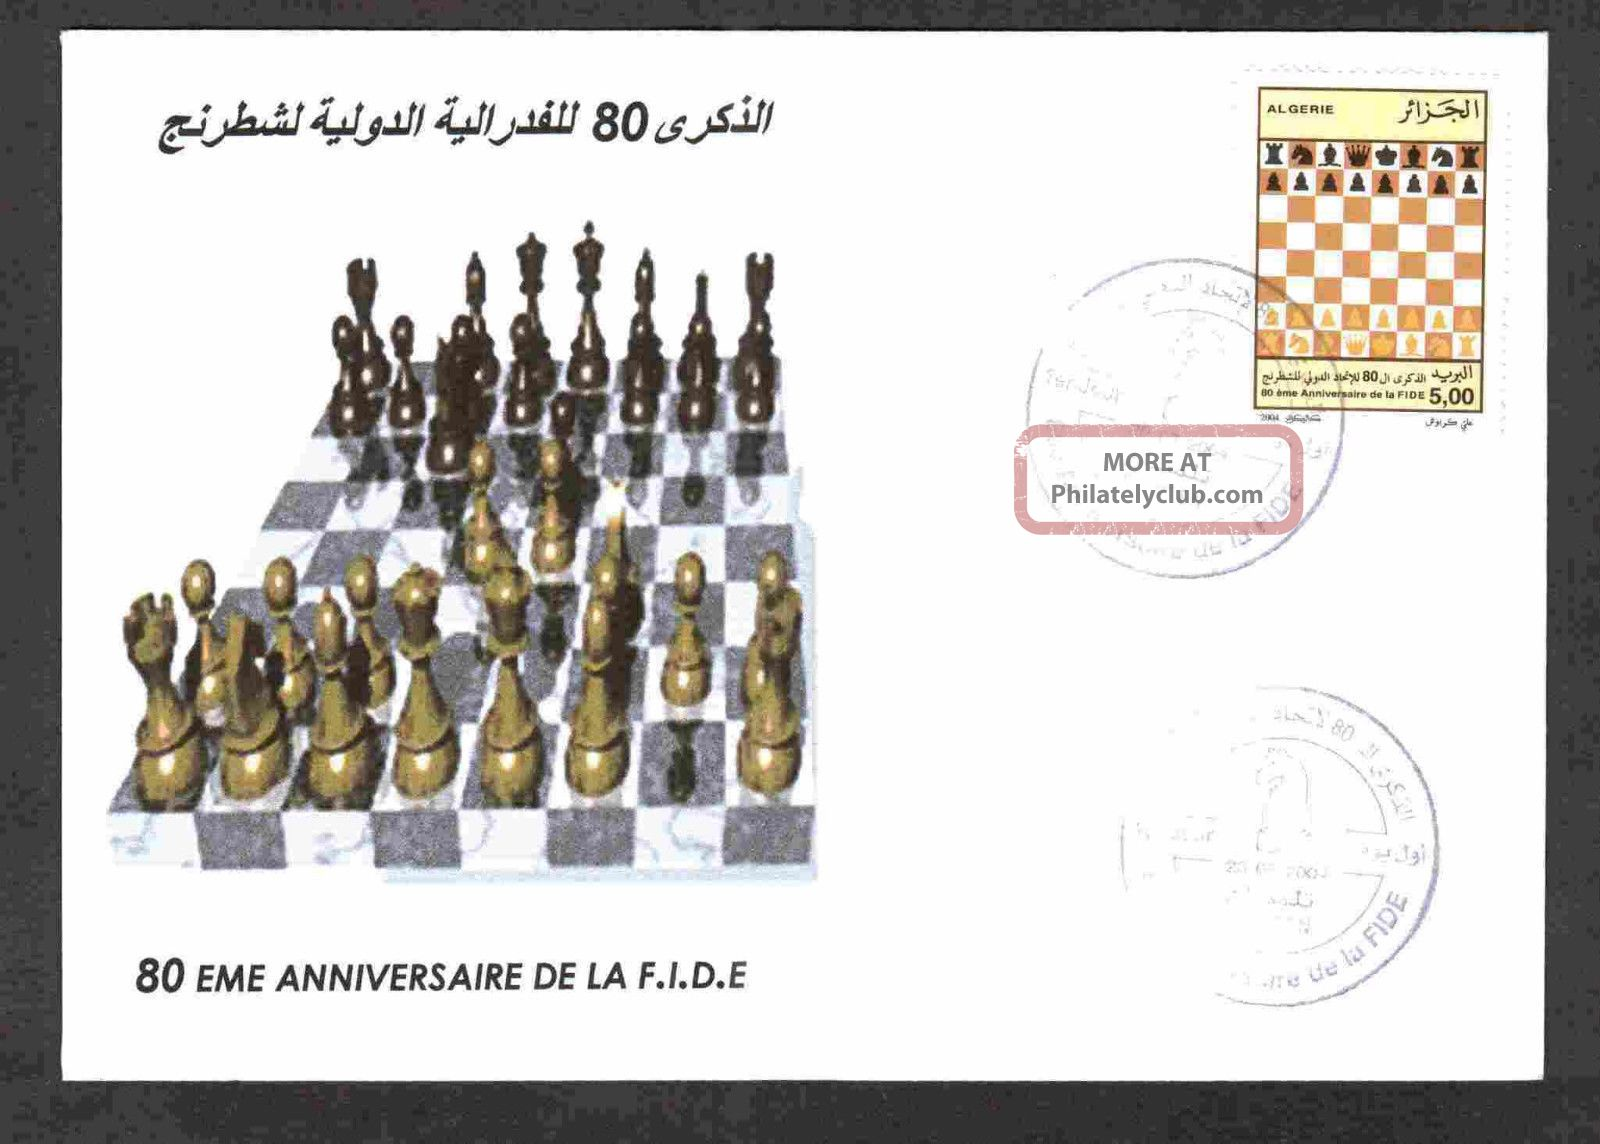 Algeria 2004 - Chess,  Scott 1310 - Fdc With Topical Cancel (tlemcen) Sports photo